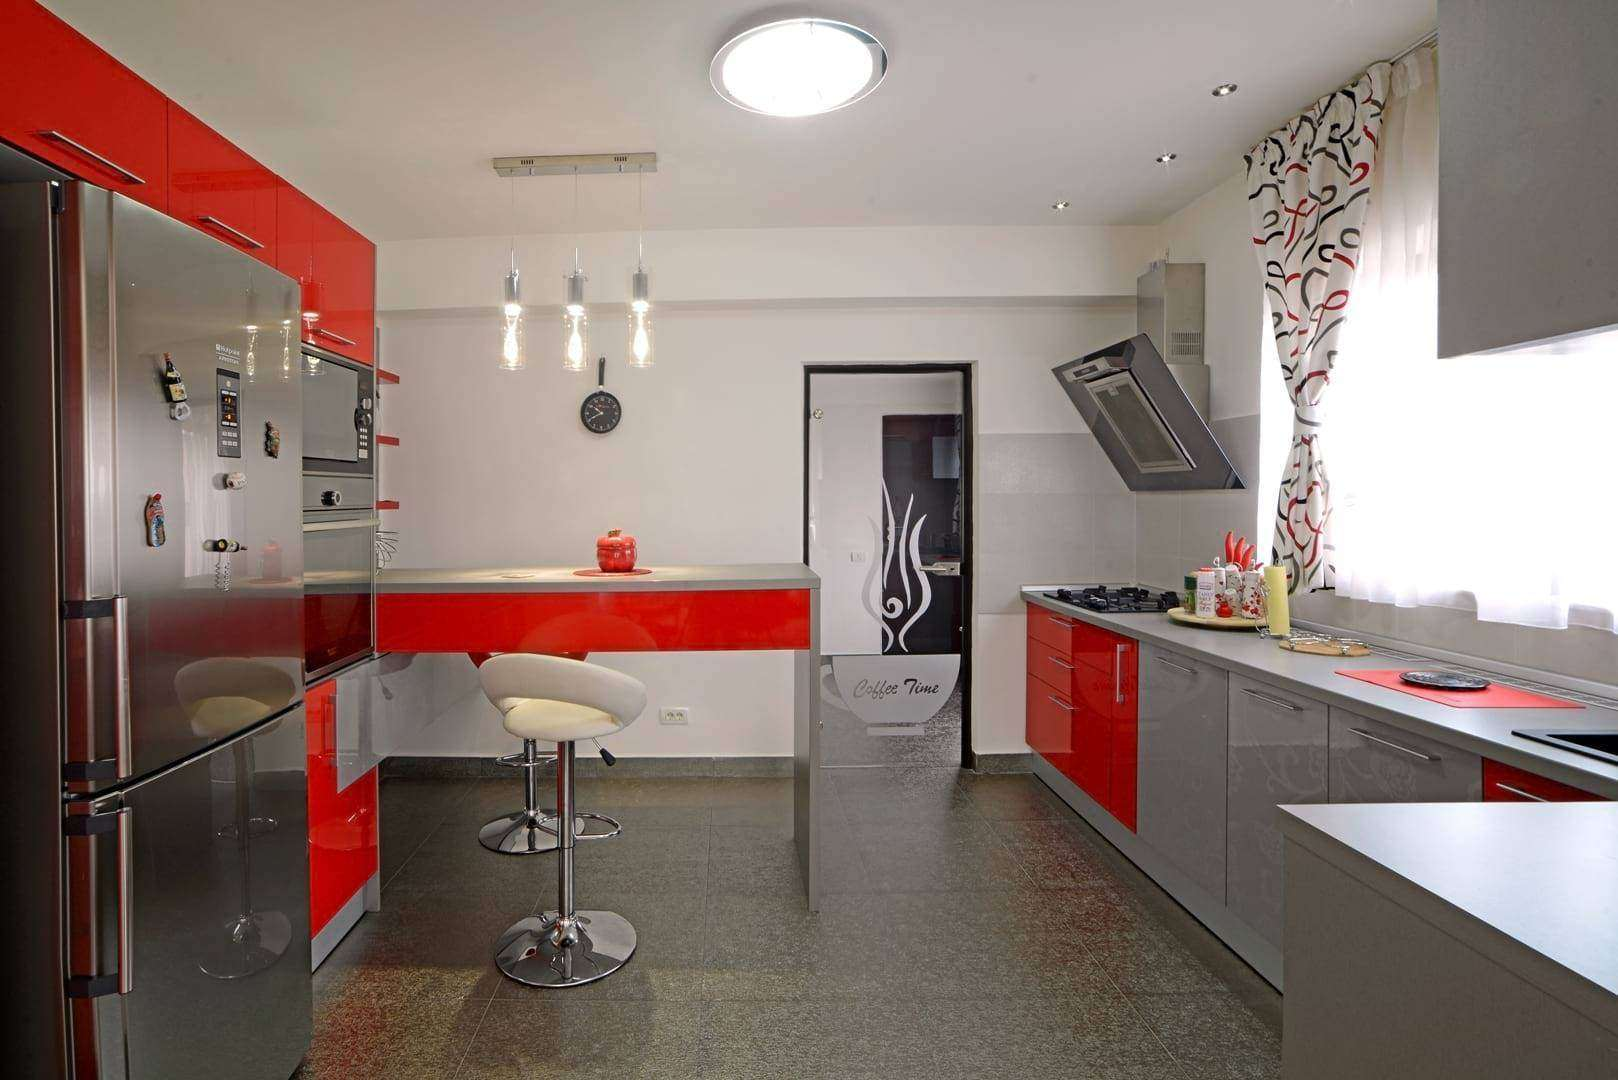 <a href=&quot;&quot;>mobila bucatarie Ramona 3<img src='http://www.unican.ro/wp-content/themes/vita/img/dreapta.png' class='pull-right hidden-xs' style='margin-right:-10px;margin-top:-10px; max-height:41px'></a>